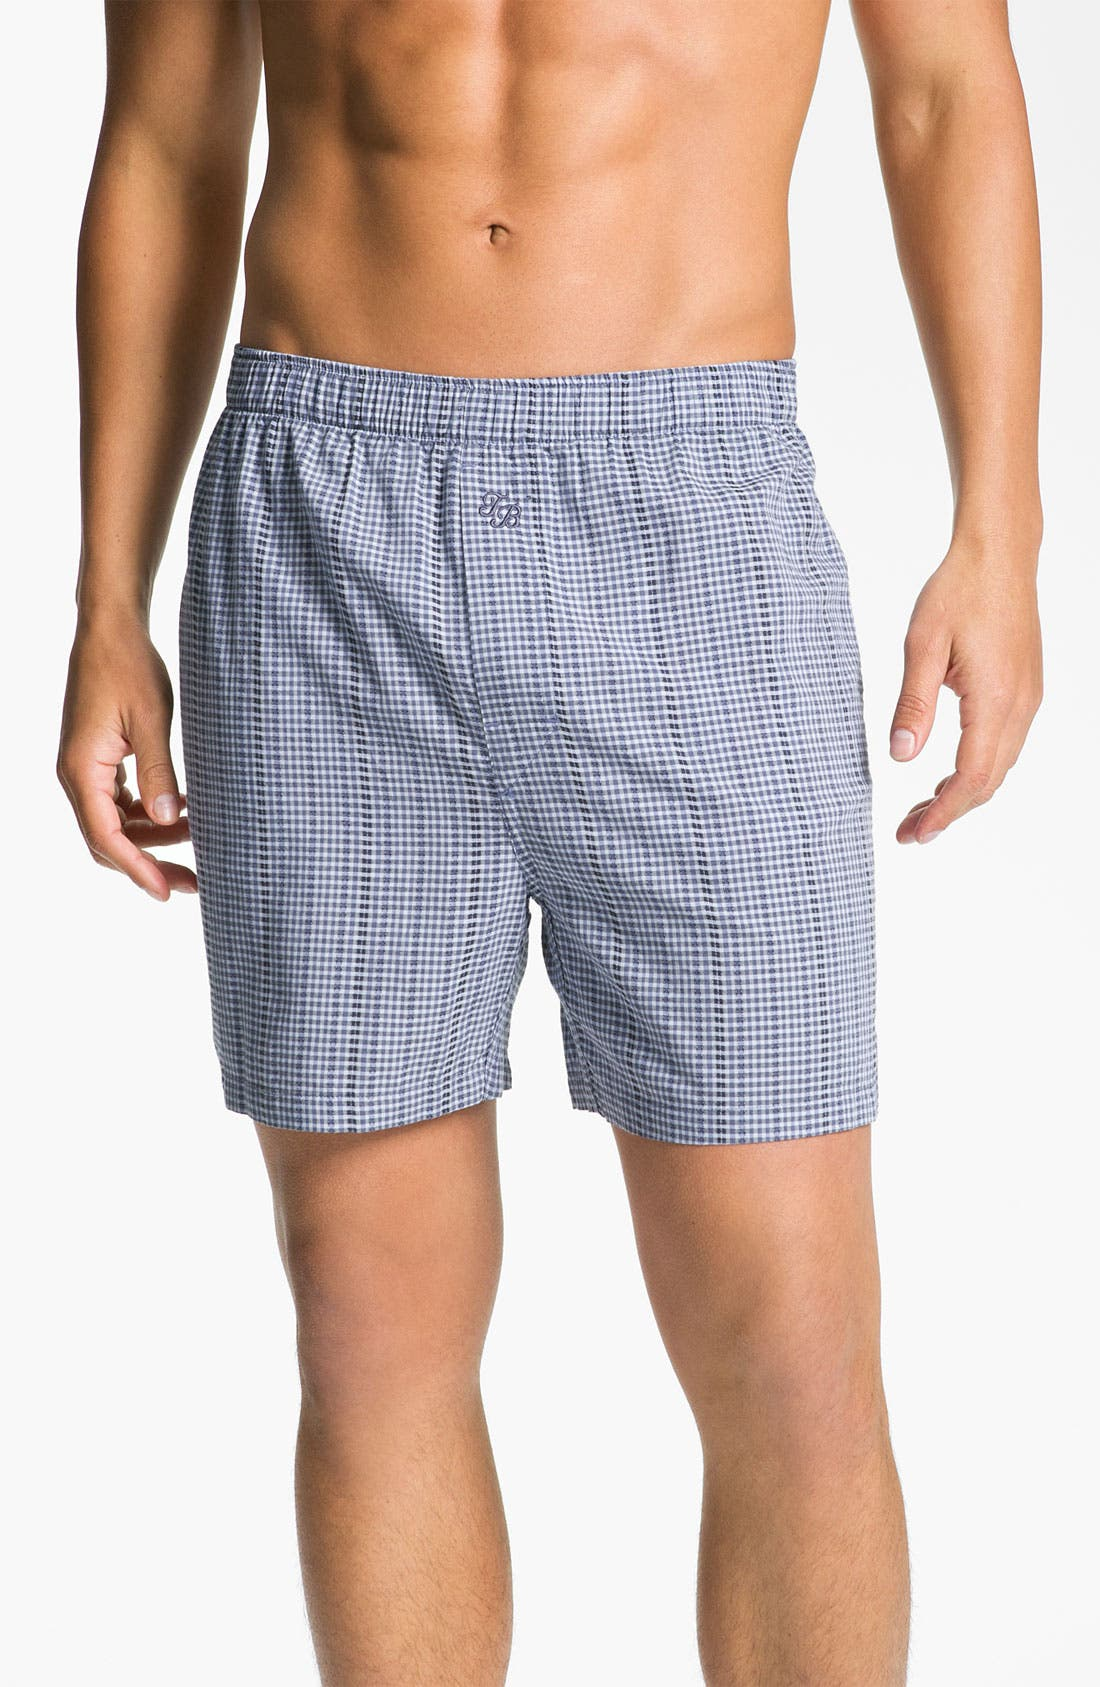 Alternate Image 2  - Tommy Bahama Print Boxers (Assorted 2-Pack)